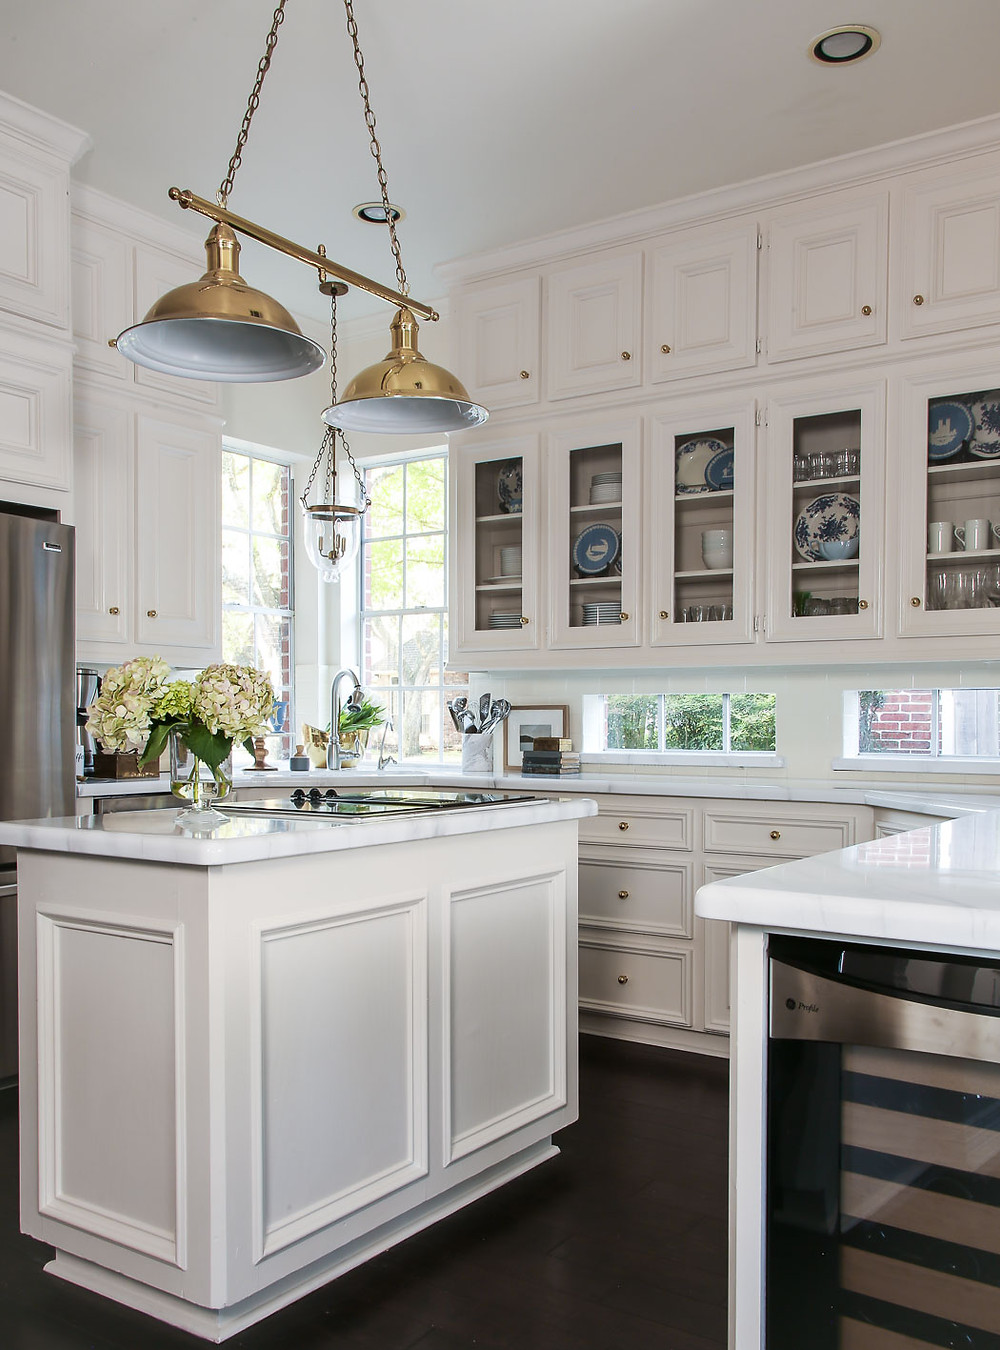 giani marble countertop paint kit, white and blue, brass kitchen inspiration